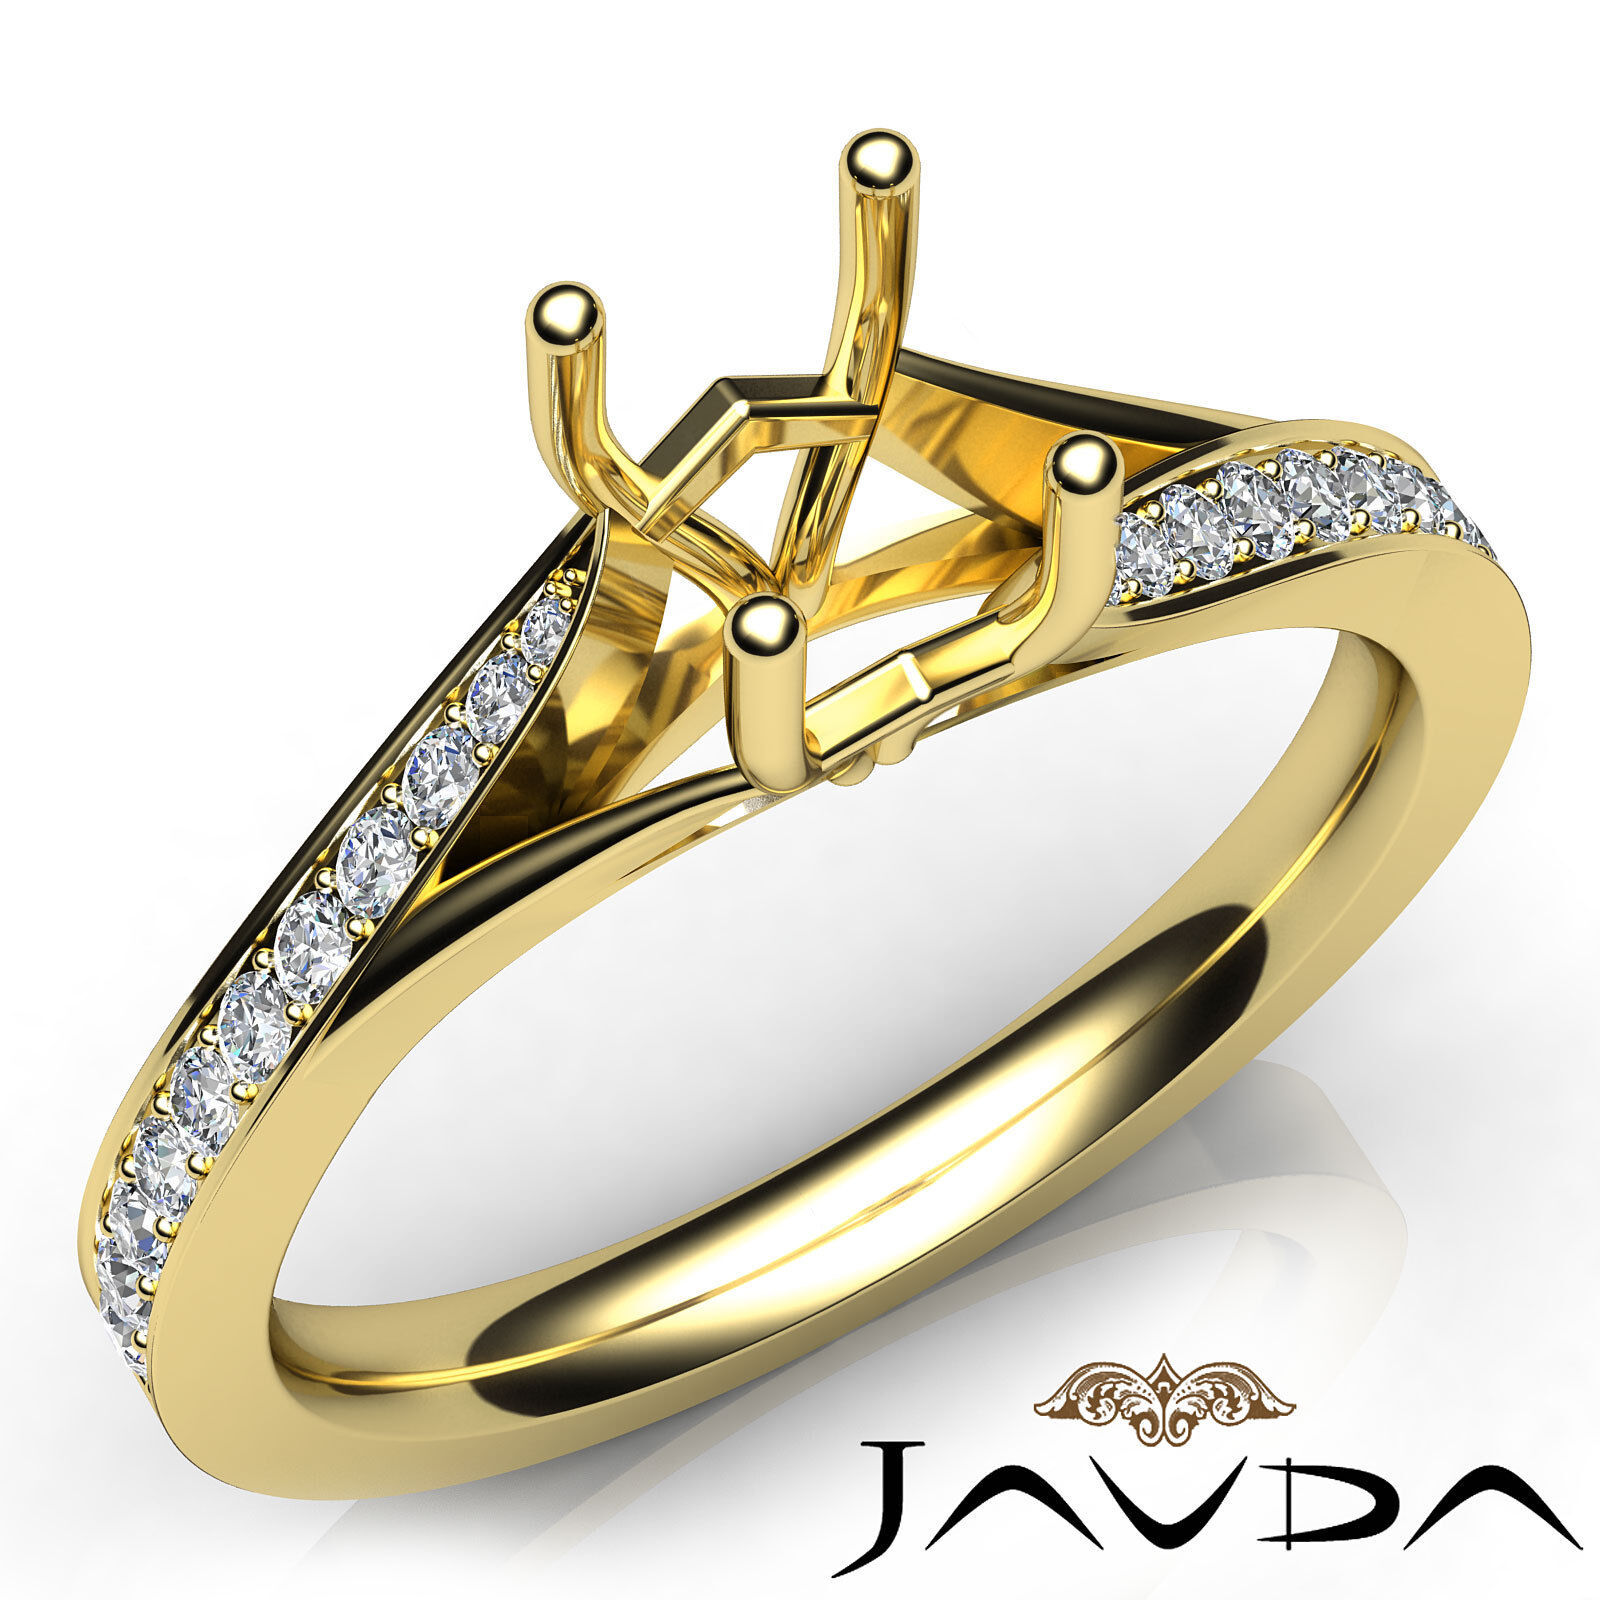 Cushion Diamond Pave Setting Engagement Semi Mount Ring 18k Yellow gold 0.35Ct